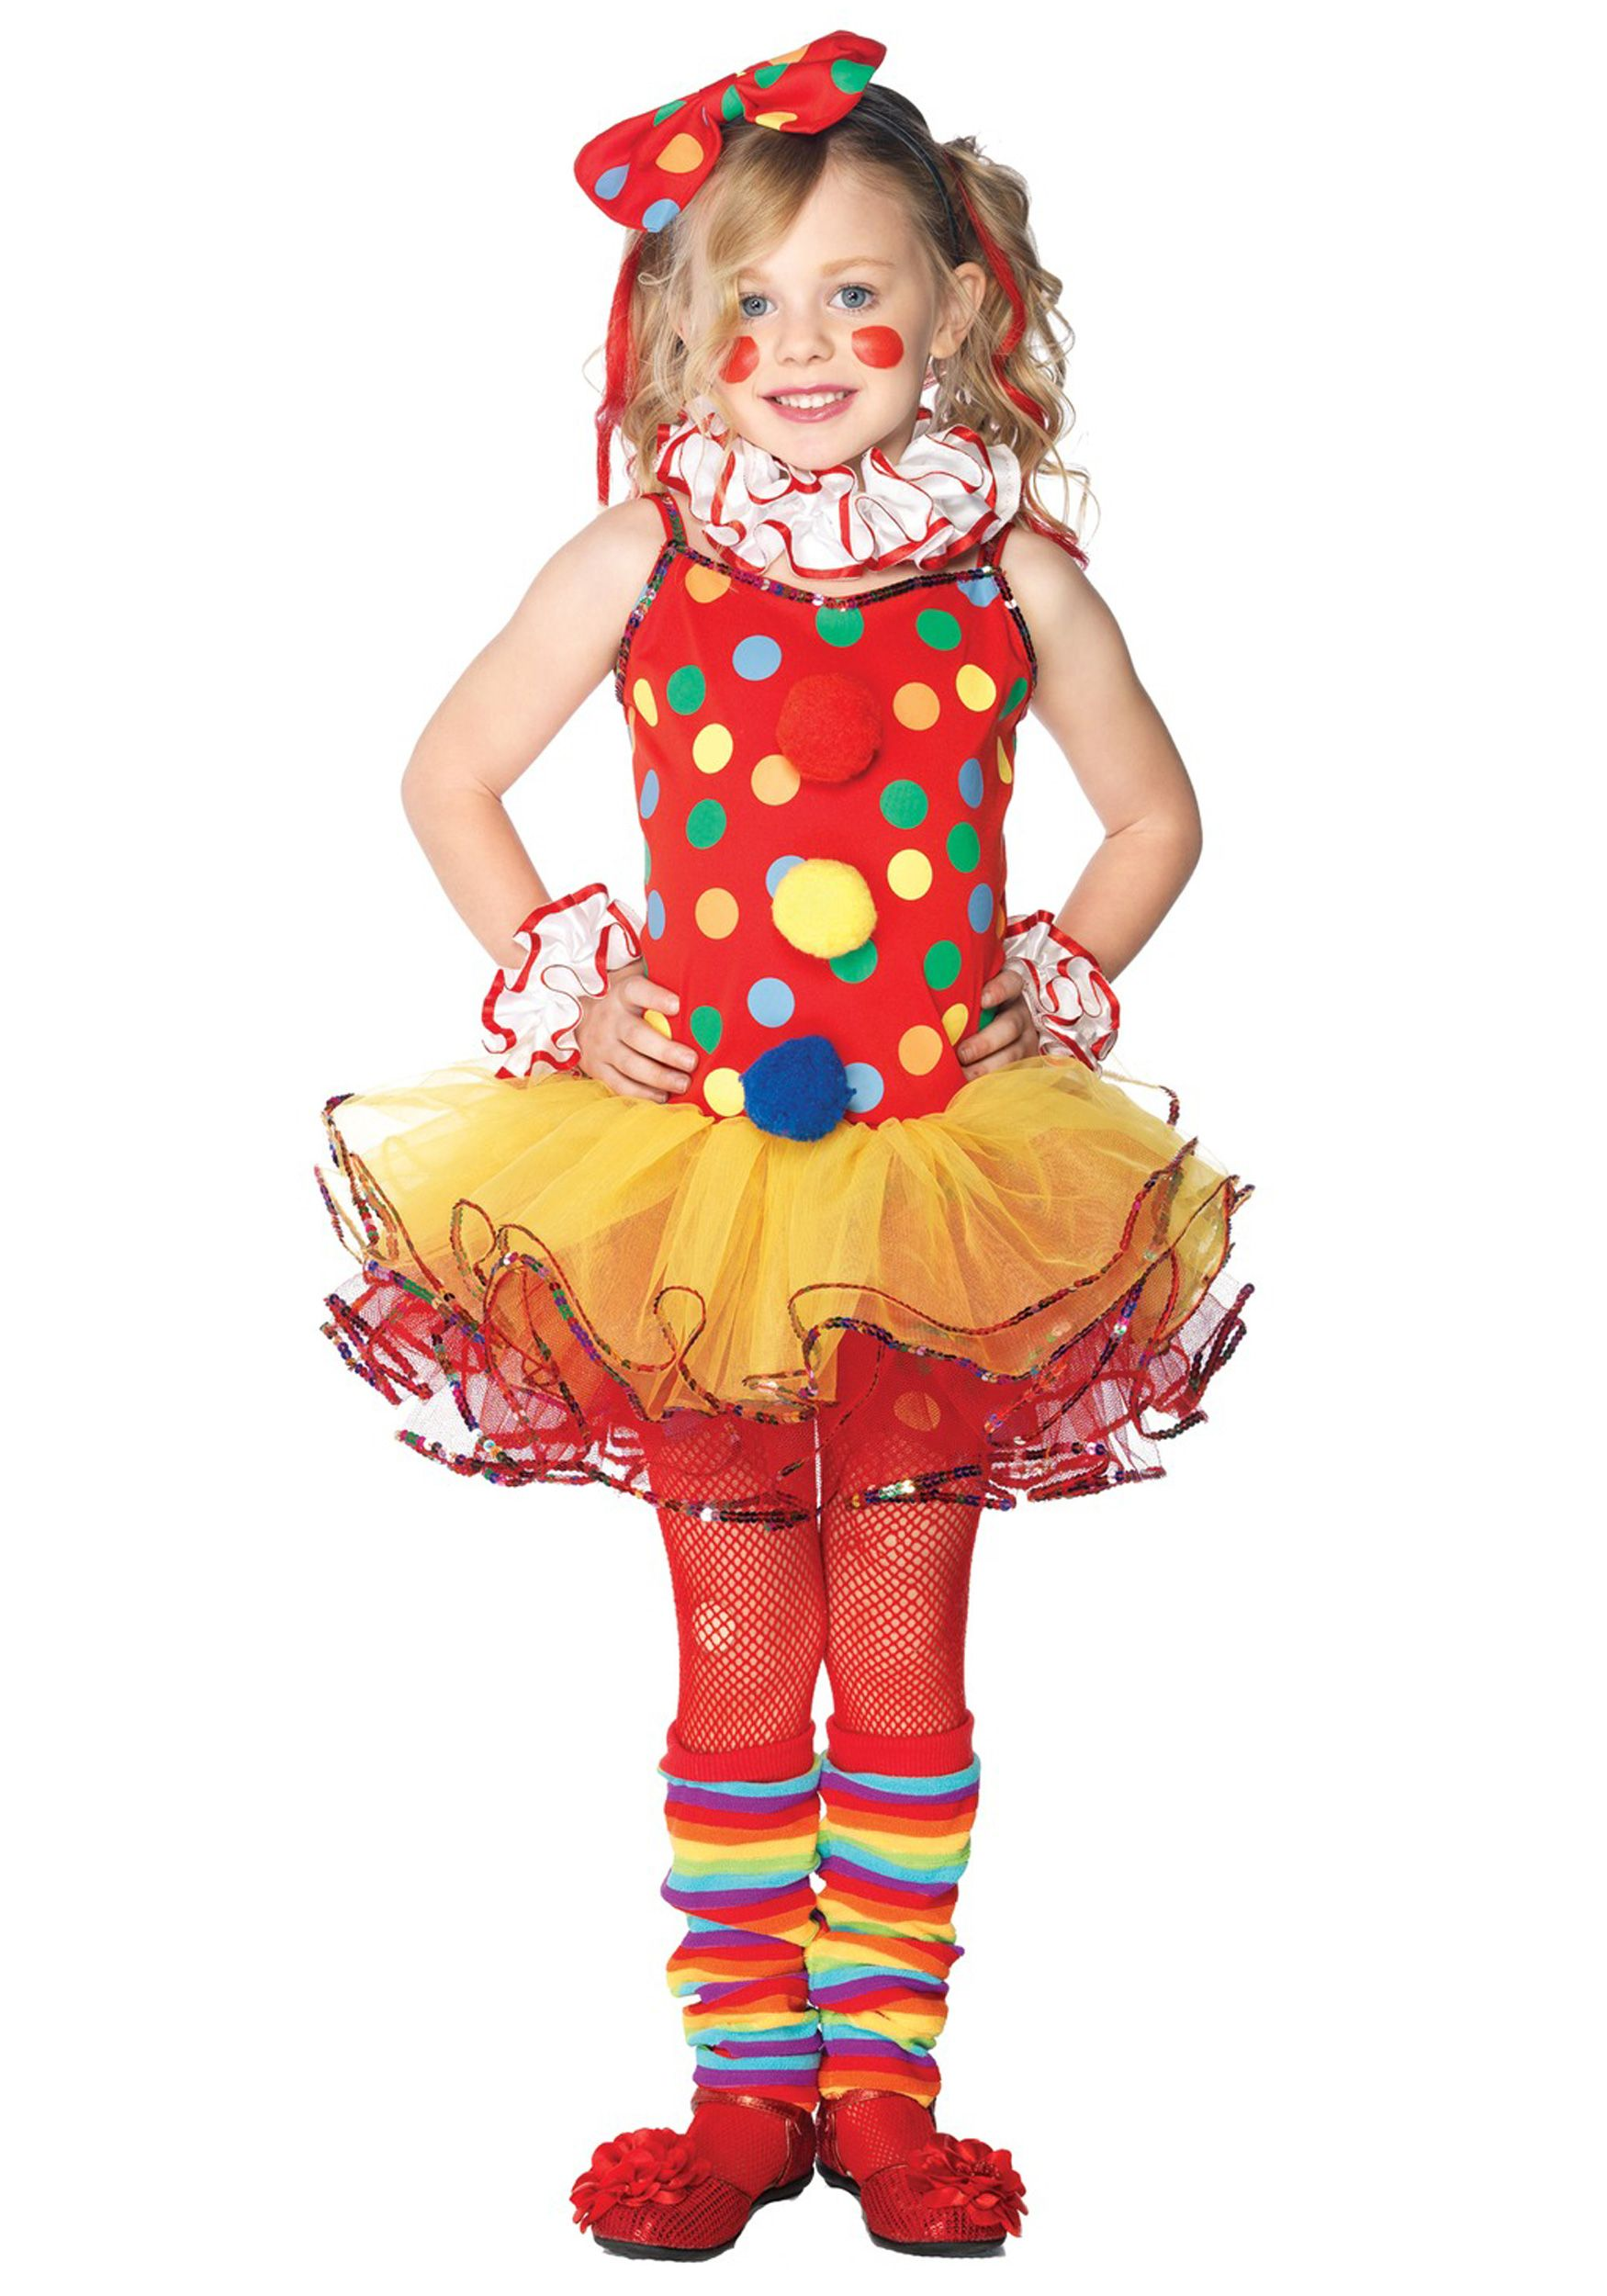 Girls Circus Clown Cutie Costume, wouldn't be too hard to replicate